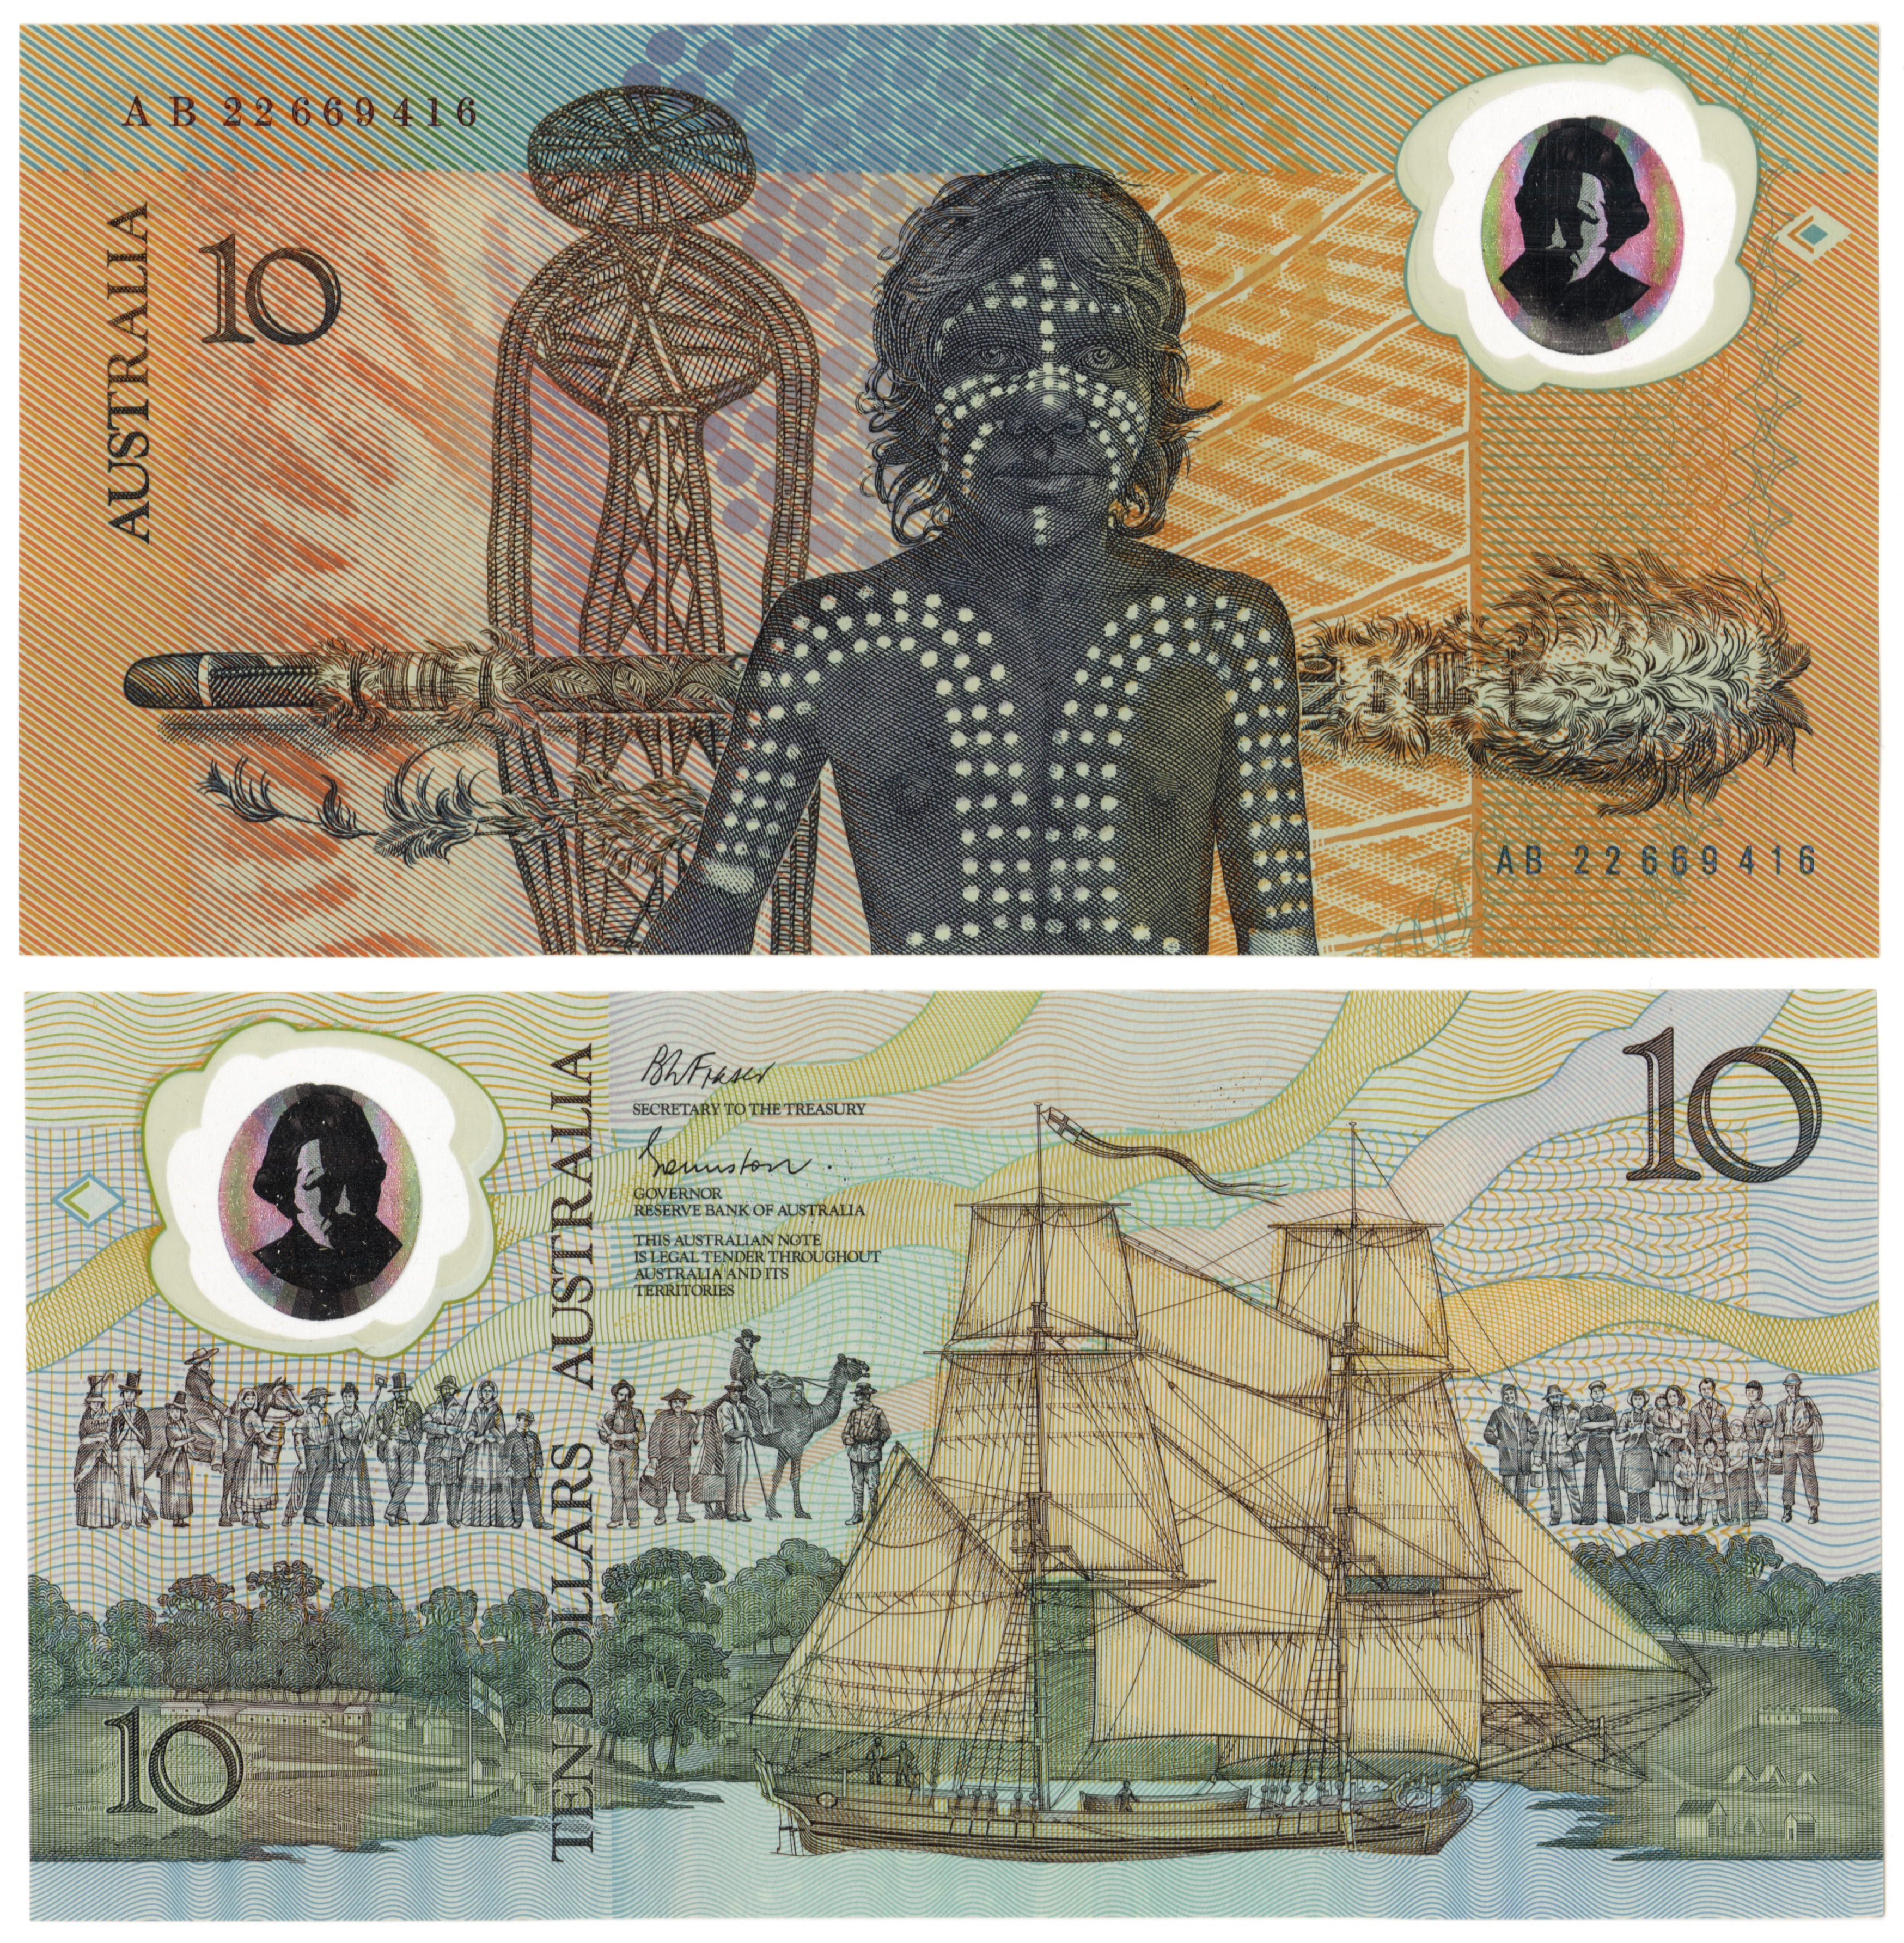 Two images above one another. Both images are banknotes designs from an Australian $10 note. One side depicts an Aboriginal man with body painting. The other shows a tall ship moored in a cove.